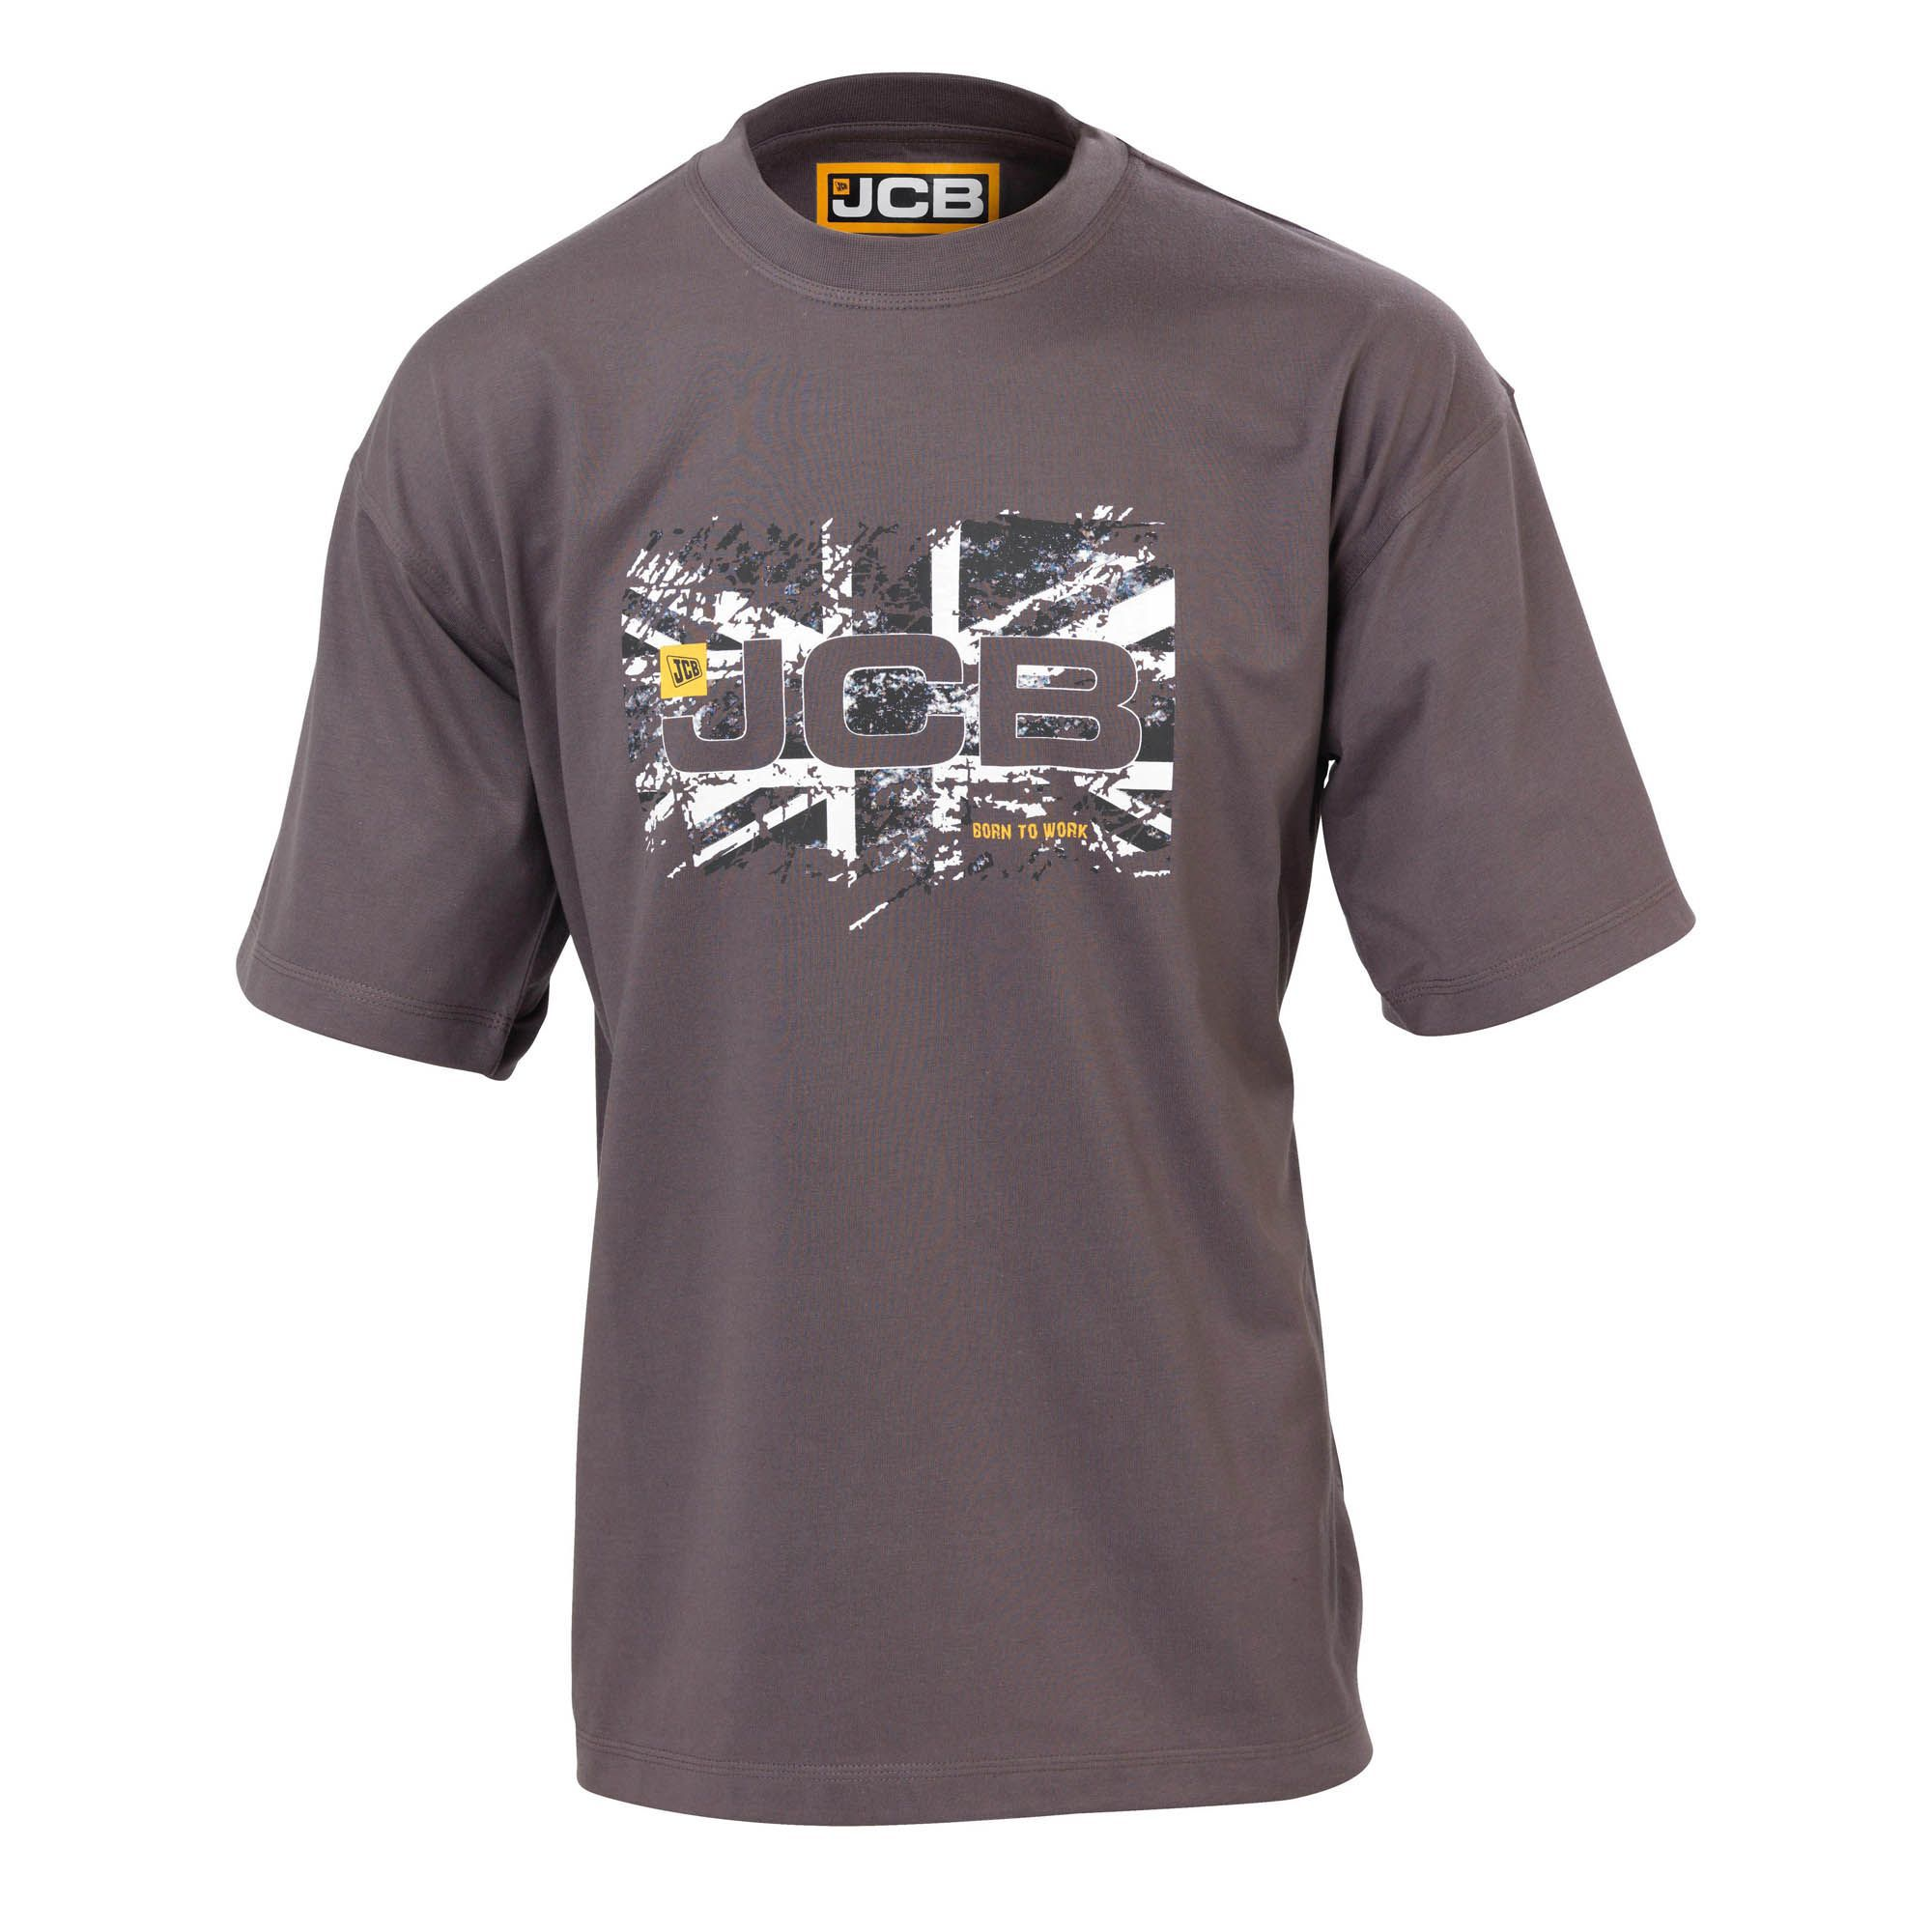 Jcb Grey Heritage T-shirt Medium